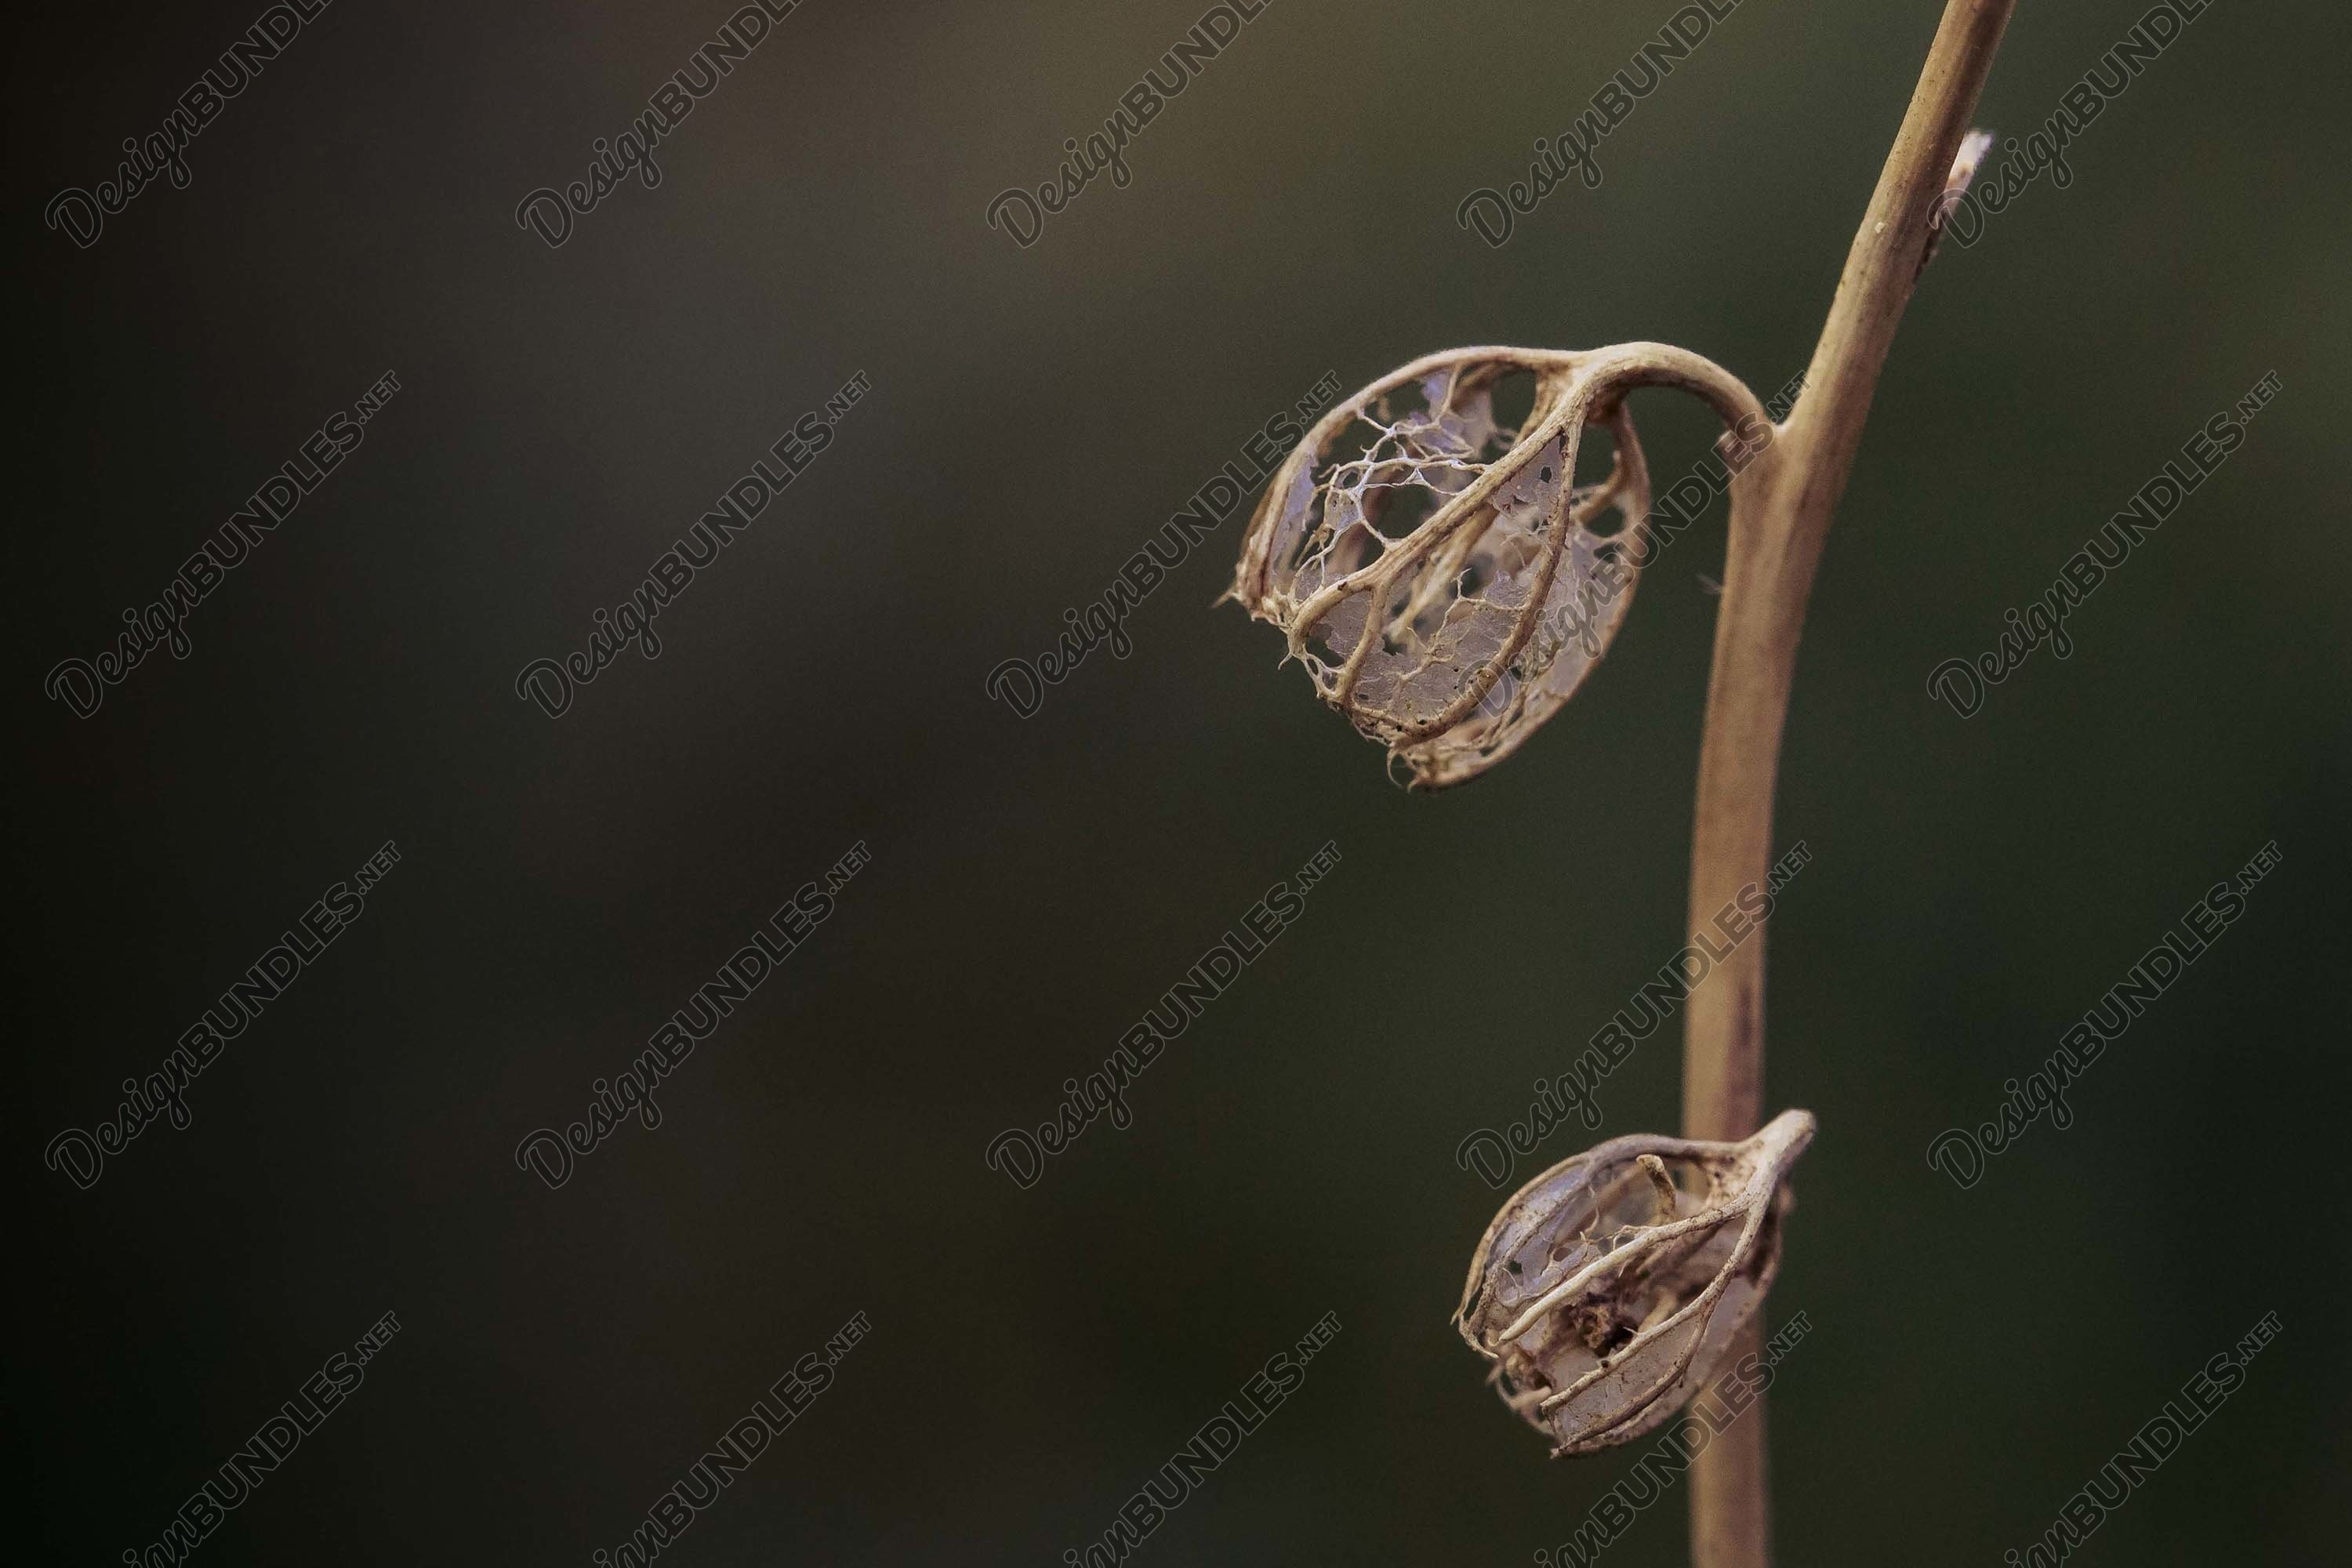 Stock Photo - Dry leaves on the stem example image 1